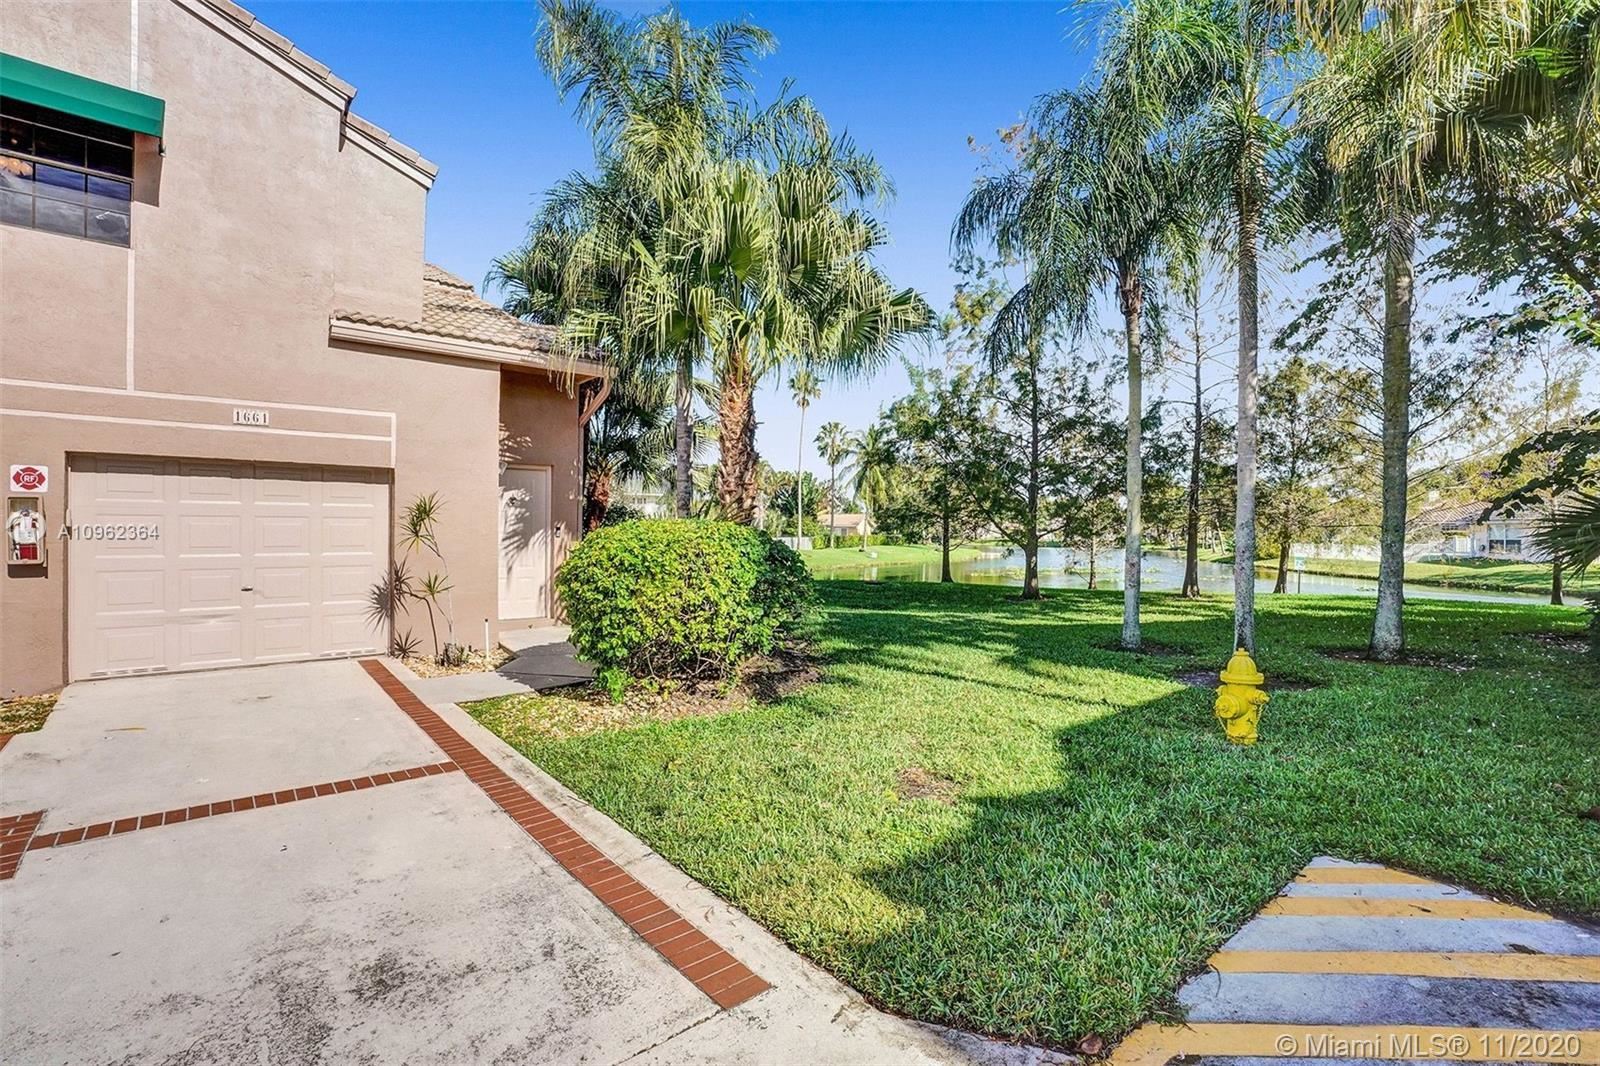 Photo of 1661 Cypress Pointe Dr #1661, Coral Springs, FL 33071 (MLS # A10962364)